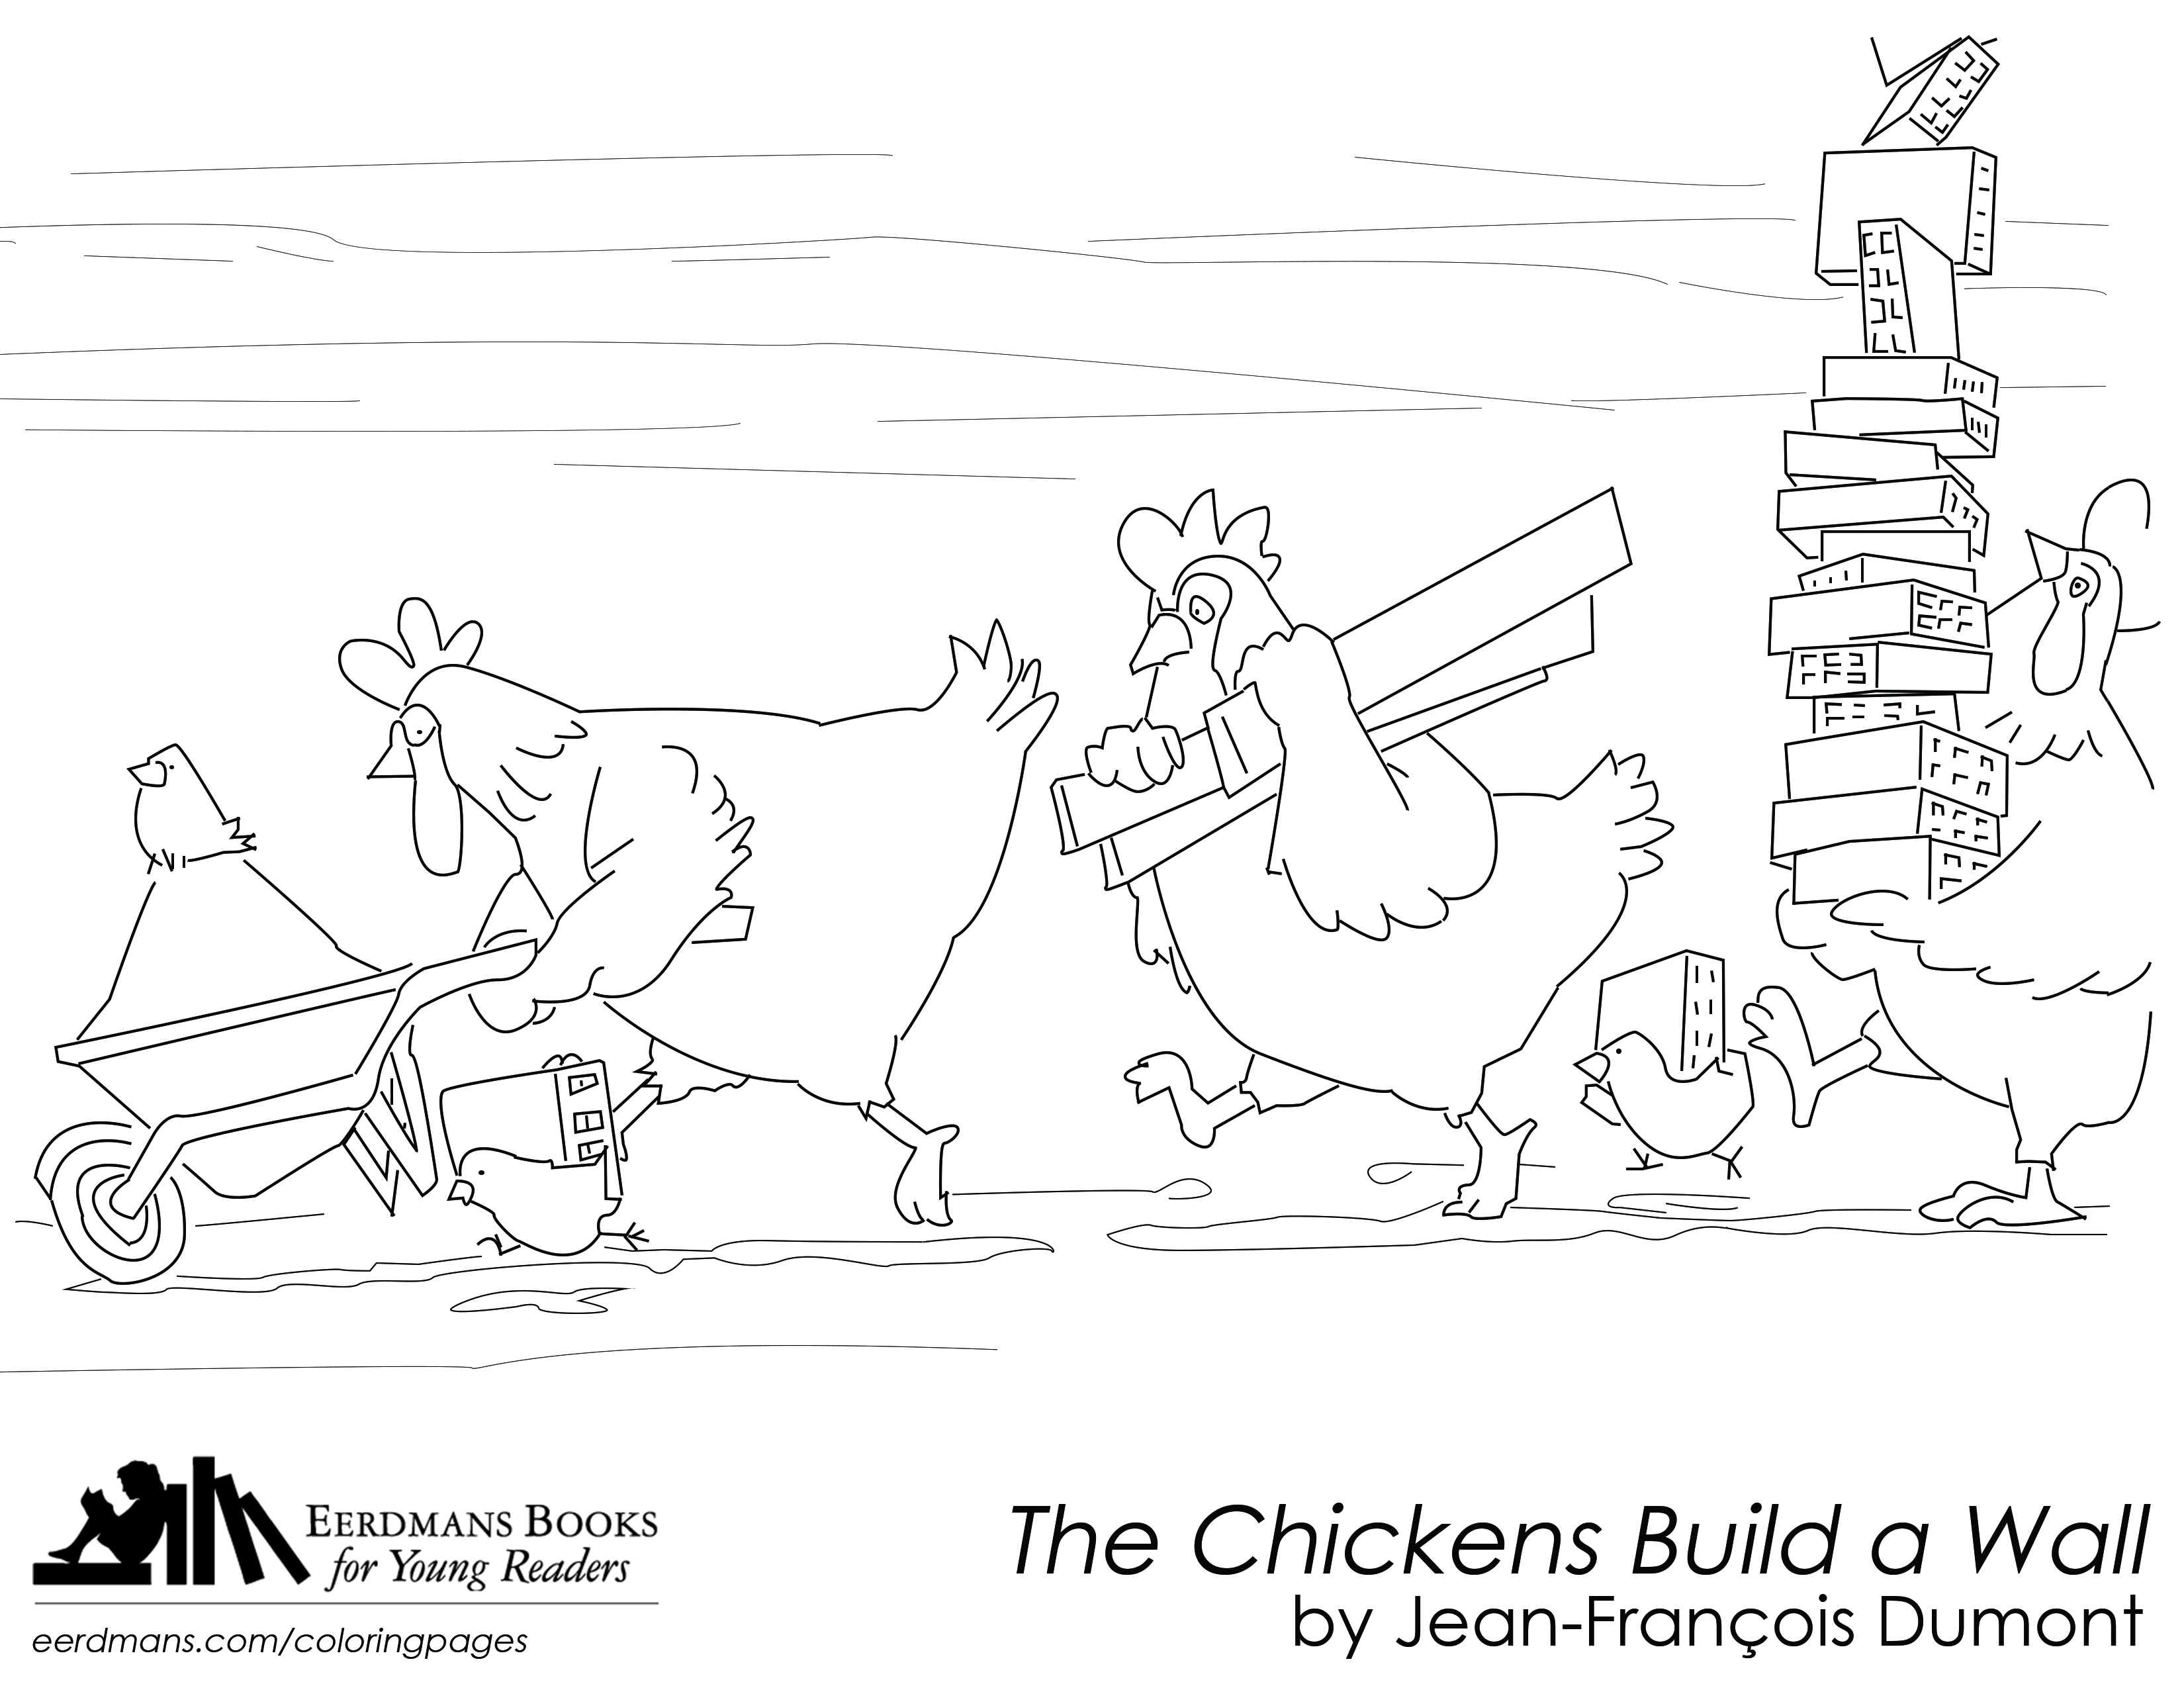 The Chickens Build a Wall coloring page